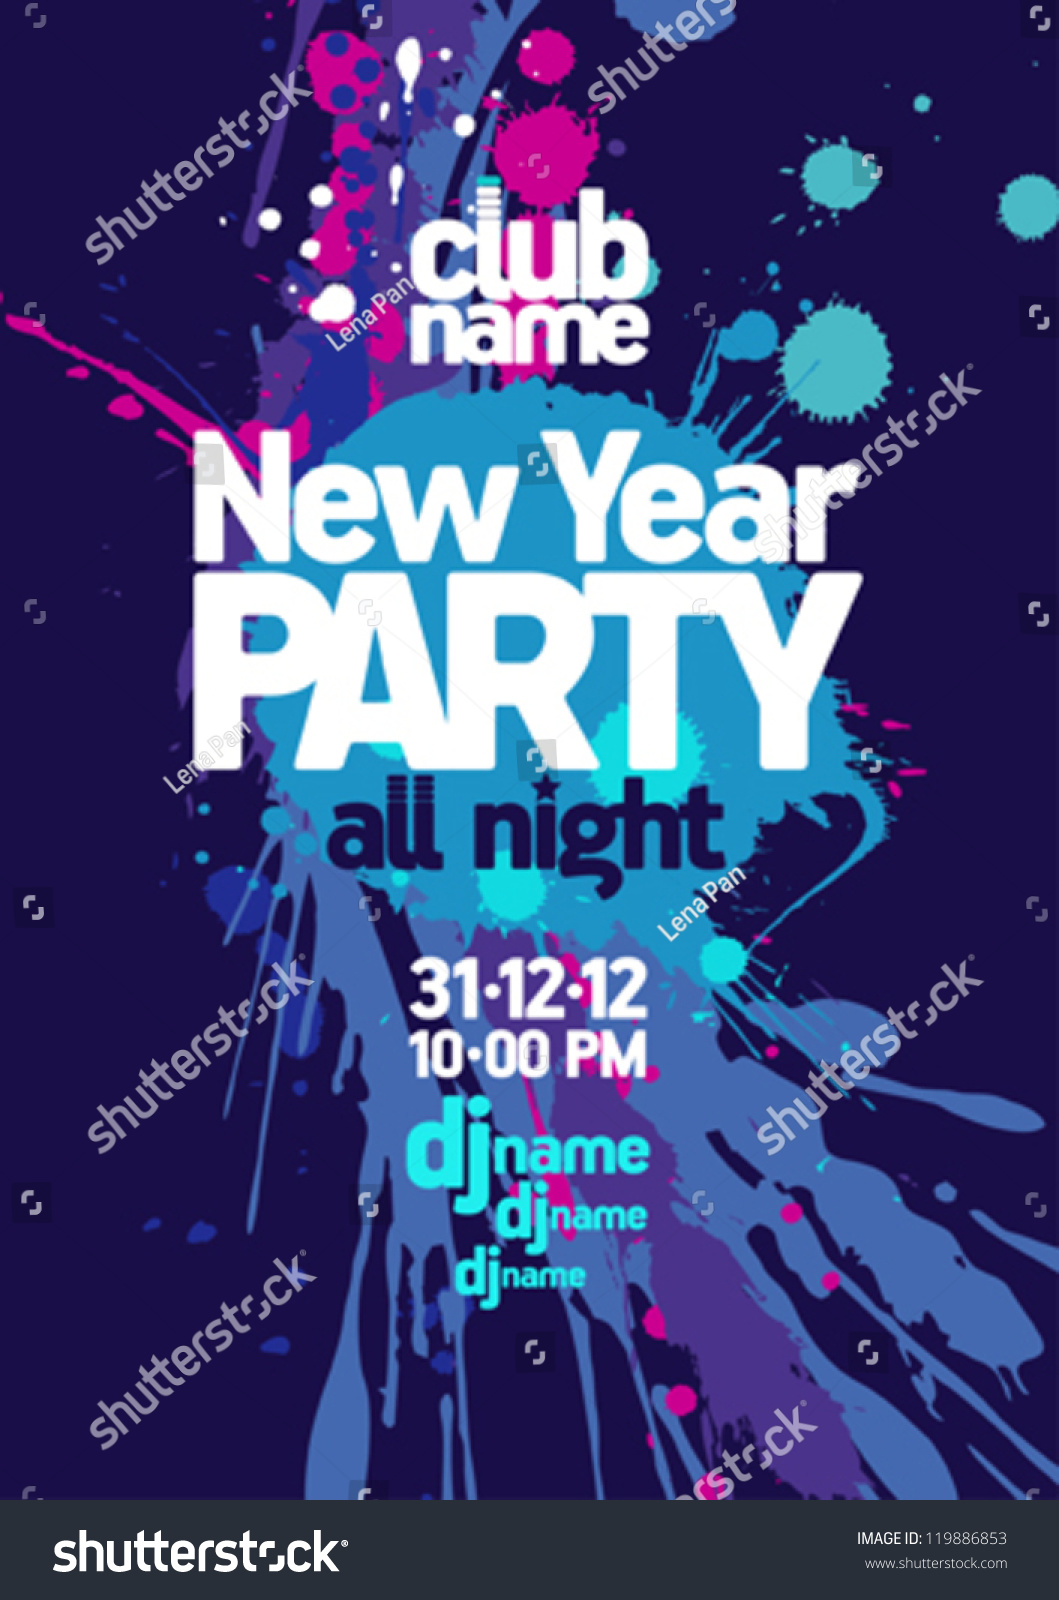 New Year Party Design Template Stock Vector 119886853 - Shutterstock